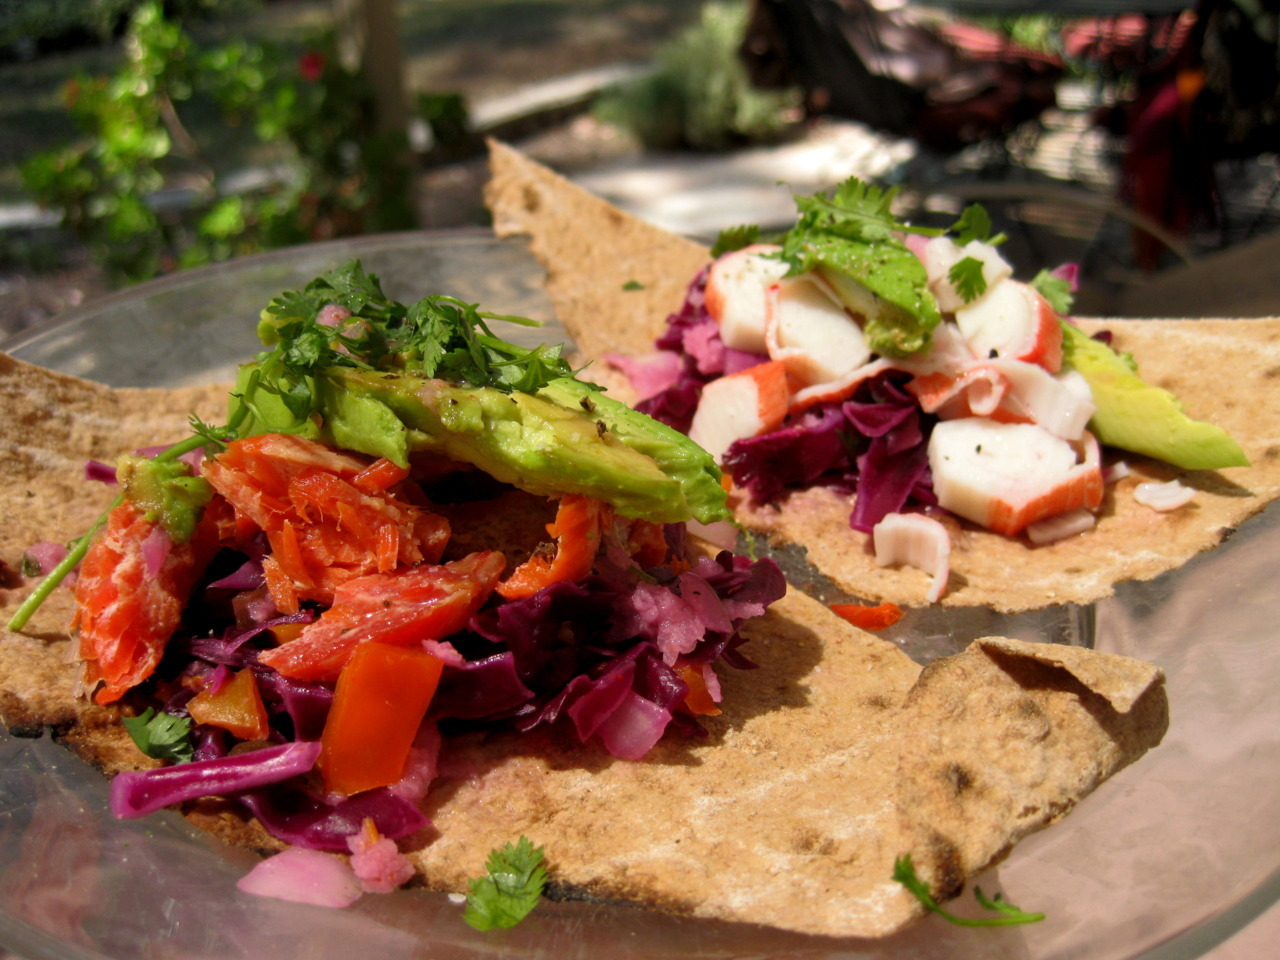 Hellllooo healthy whole-wheat lavash fish tacos!  I made these beauties with the left over ingredients from last nights Pacific Orchestra Symphony Picnic. Smoked Salmon Taco with Lime Cilantro Fiesta Slaw and a Crab Taco with Lime Cilantro Fiesta Slaw. Oh heaven.   Recipe for Slaw: Adapted from Family Kitchen.  Cilantro Jicama Fiesta Slawmakes about 5-6 cups   3 cups red cabbage, shredded1 cup jicama, thinly slicedSqueeze of citrus juice like orange or mandarin 1/4 cup white onion, diced1/2 tsp citrus zest (I used lime and orange)2 Tbsp jalapeno, diced 2 Tbsp cider vinegar 1 Tbsp Lime Juice 1 cup cilantro (stems and leaves), chopped1/4 tsp cayennesalt and pepper to taste Directions 1. Prepare all your veggies – I used a mandoline to shred my cabbage and slice my jicama. 2. Combine all the ingredients in a large mixing bowl – toss well. Customize the moisture-level of your slaw – to 'wet' your slaw a bit more, add in extra citrus juice. I added in about 1-2 Tbsp extra lime juice because I like my slaw nice and juicy. Salt and pepper to taste. 3. Chill in fridge until ready to be served.